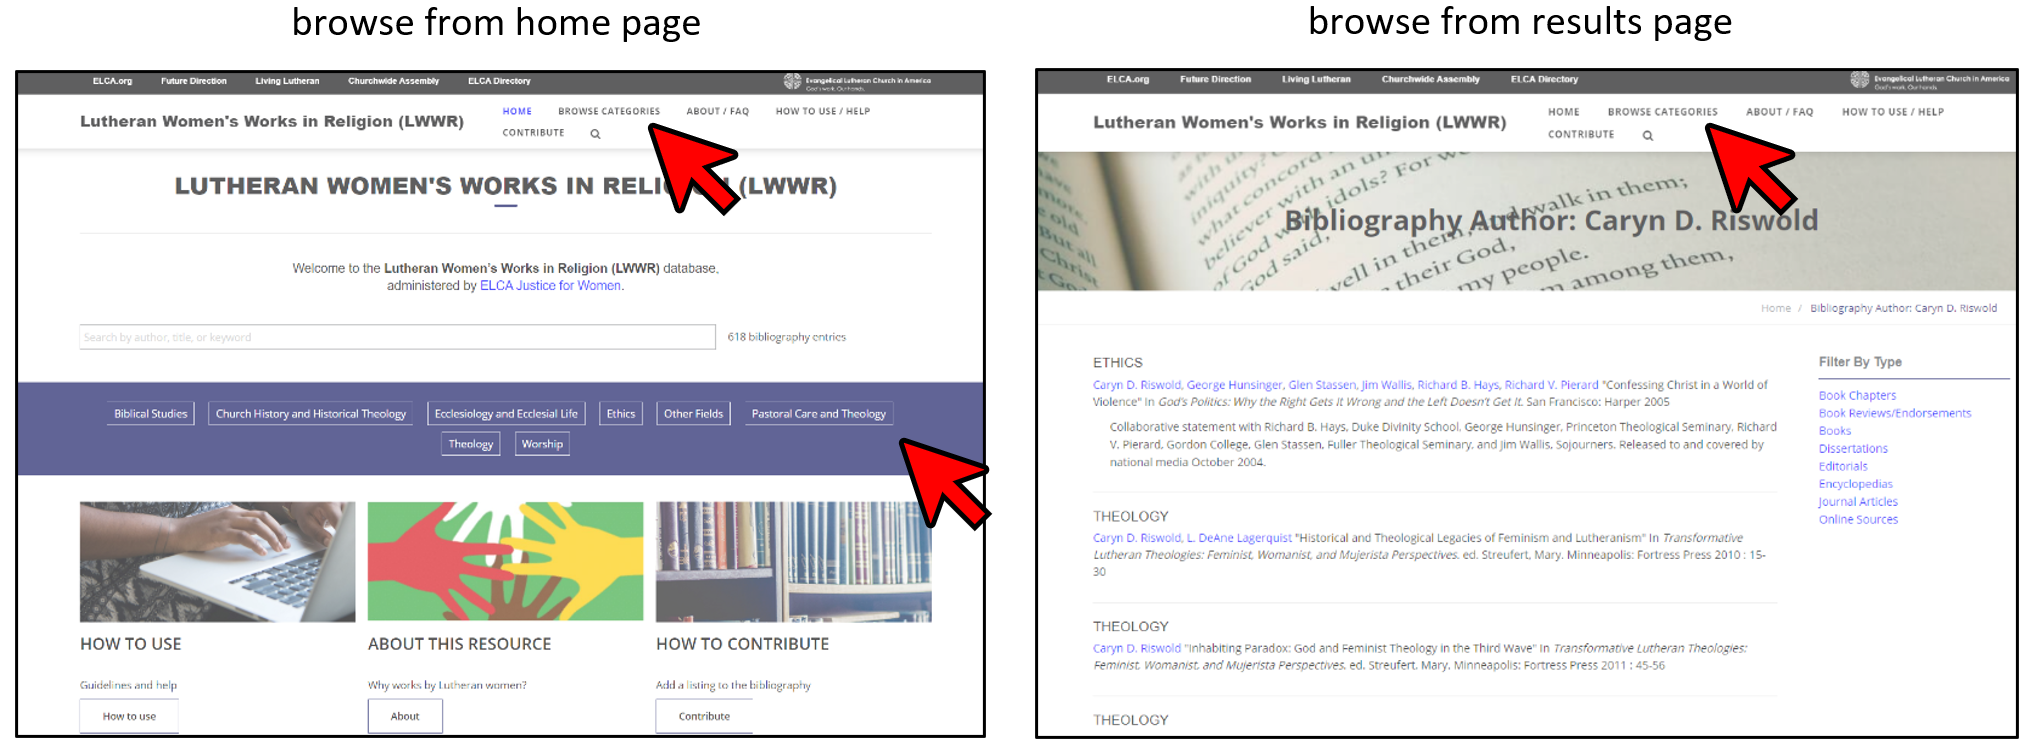 Screen shot of home page and interior page with red arrows showing how to browse.